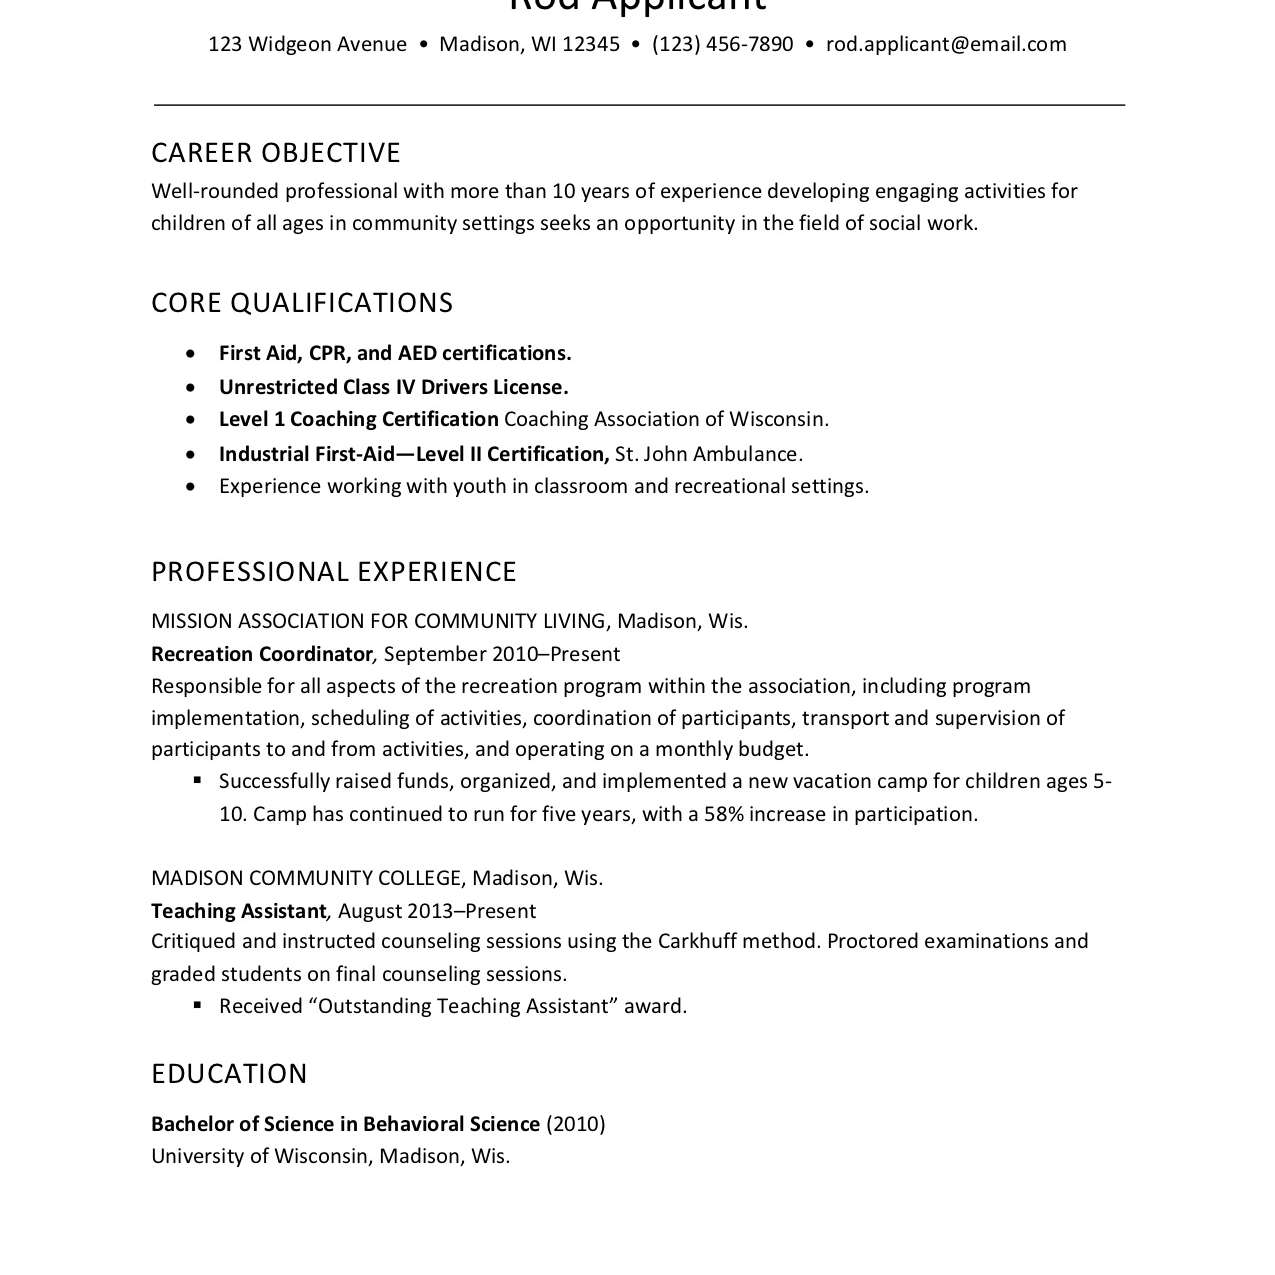 resume example for childcare social services worker with babysitting experience Resume Resume With Babysitting Experience